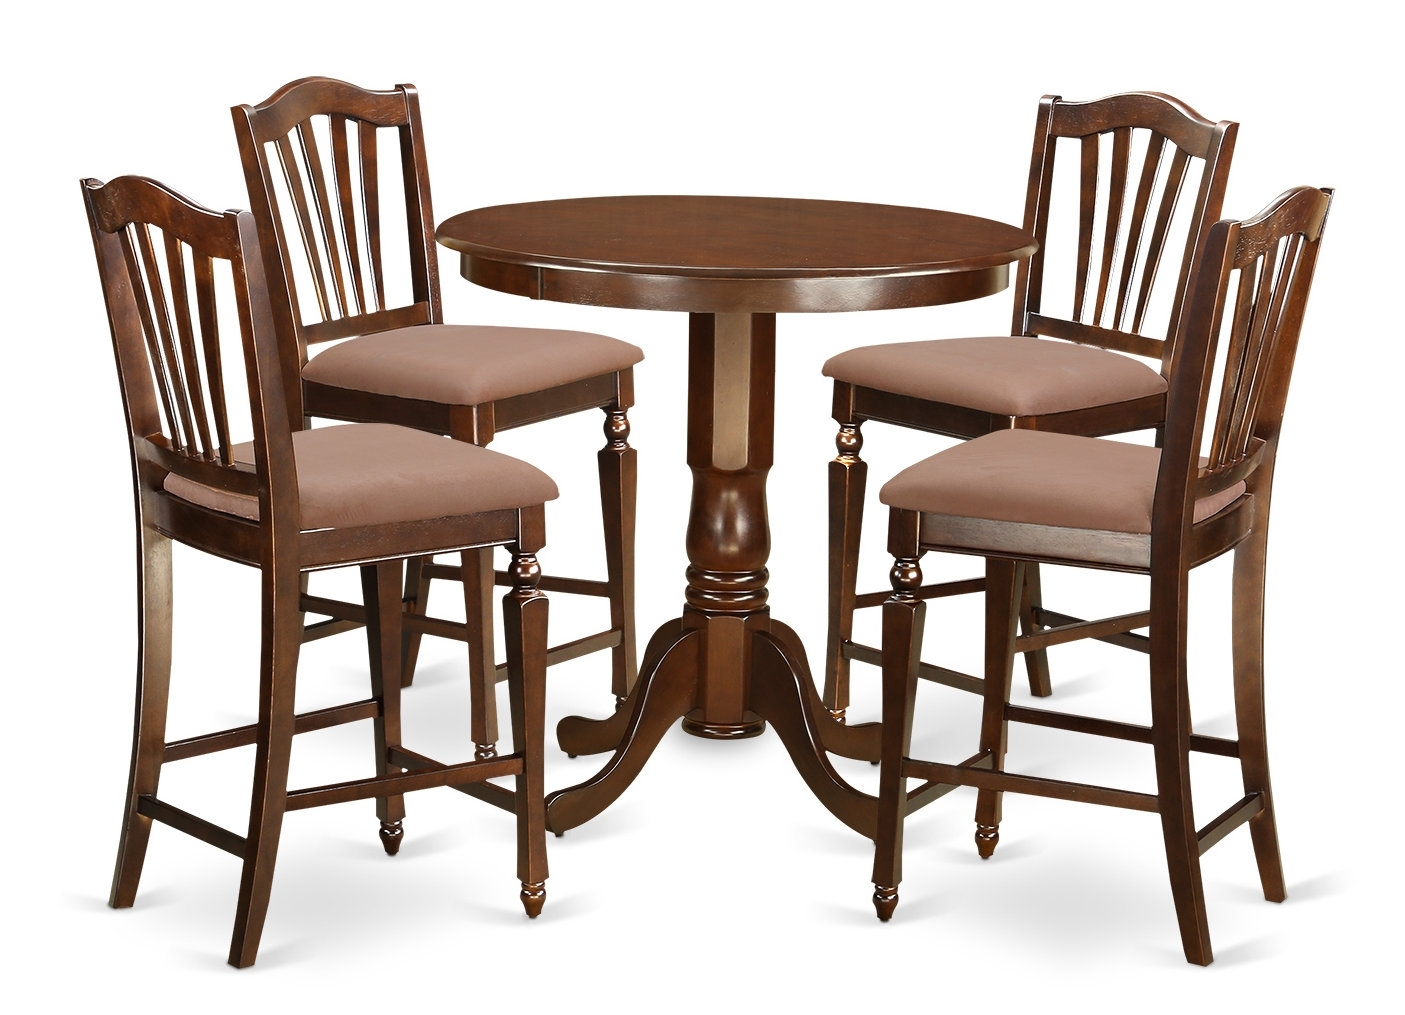 East West Jackson 5 Piece Counter Height Pub Table Set | Wayfair Within Current Jaxon Grey 7 Piece Rectangle Extension Dining Sets With Wood Chairs (Image 5 of 20)